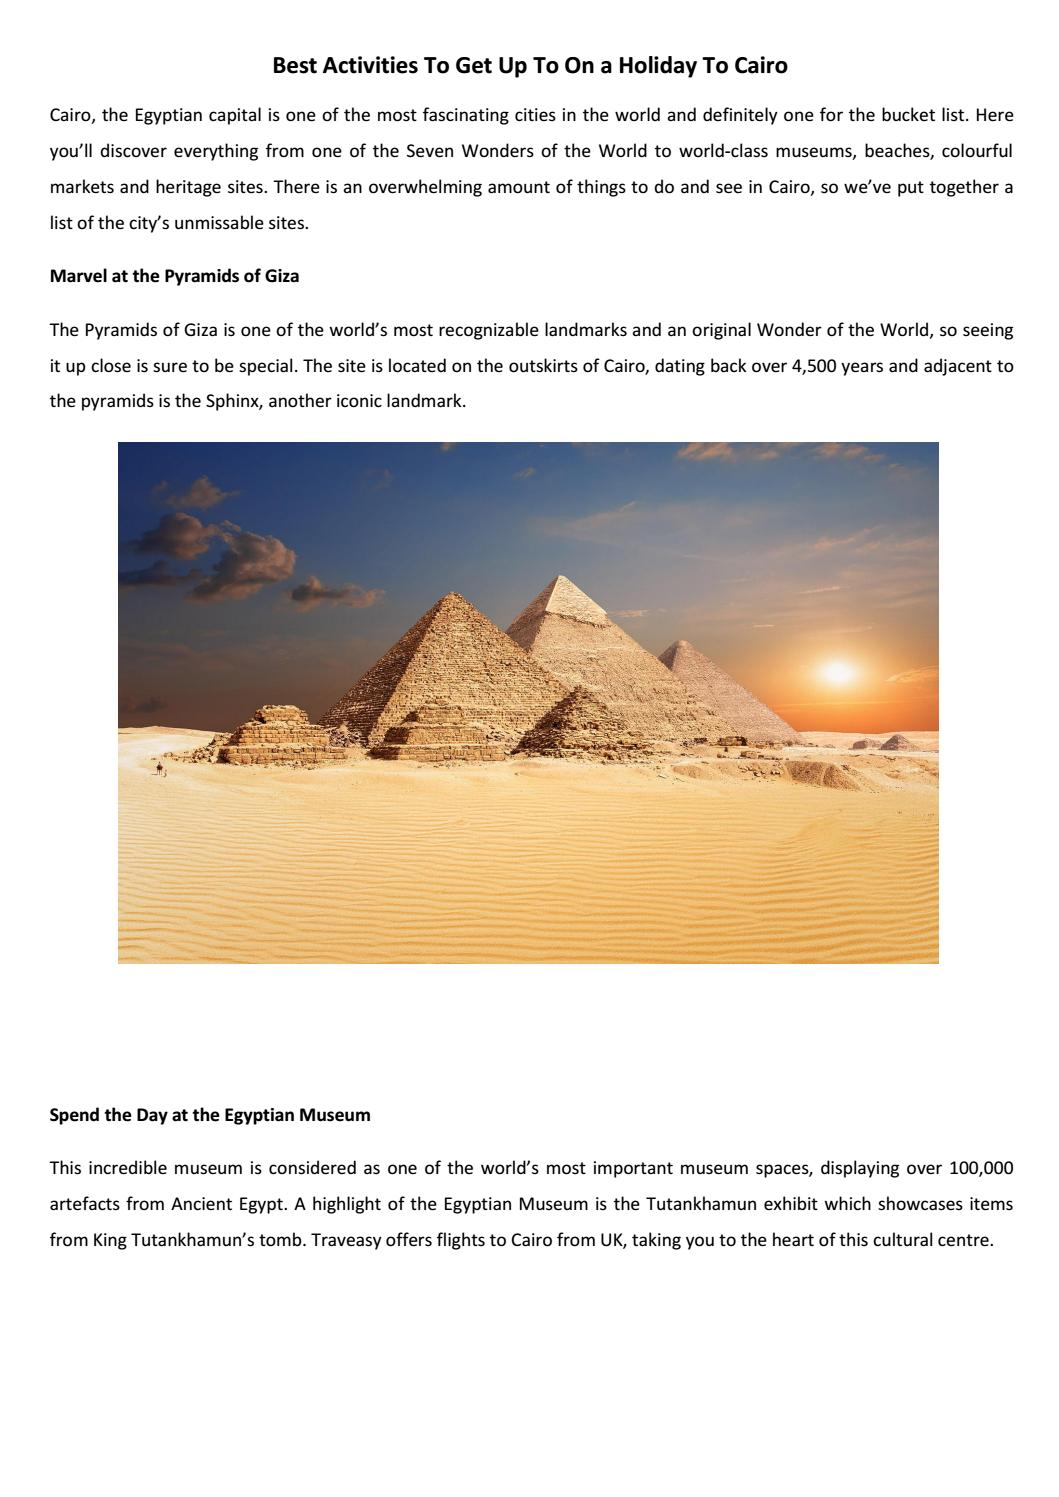 Best Activities To Get Up To On A Holiday To Cairo By Traveasyuk Issuu